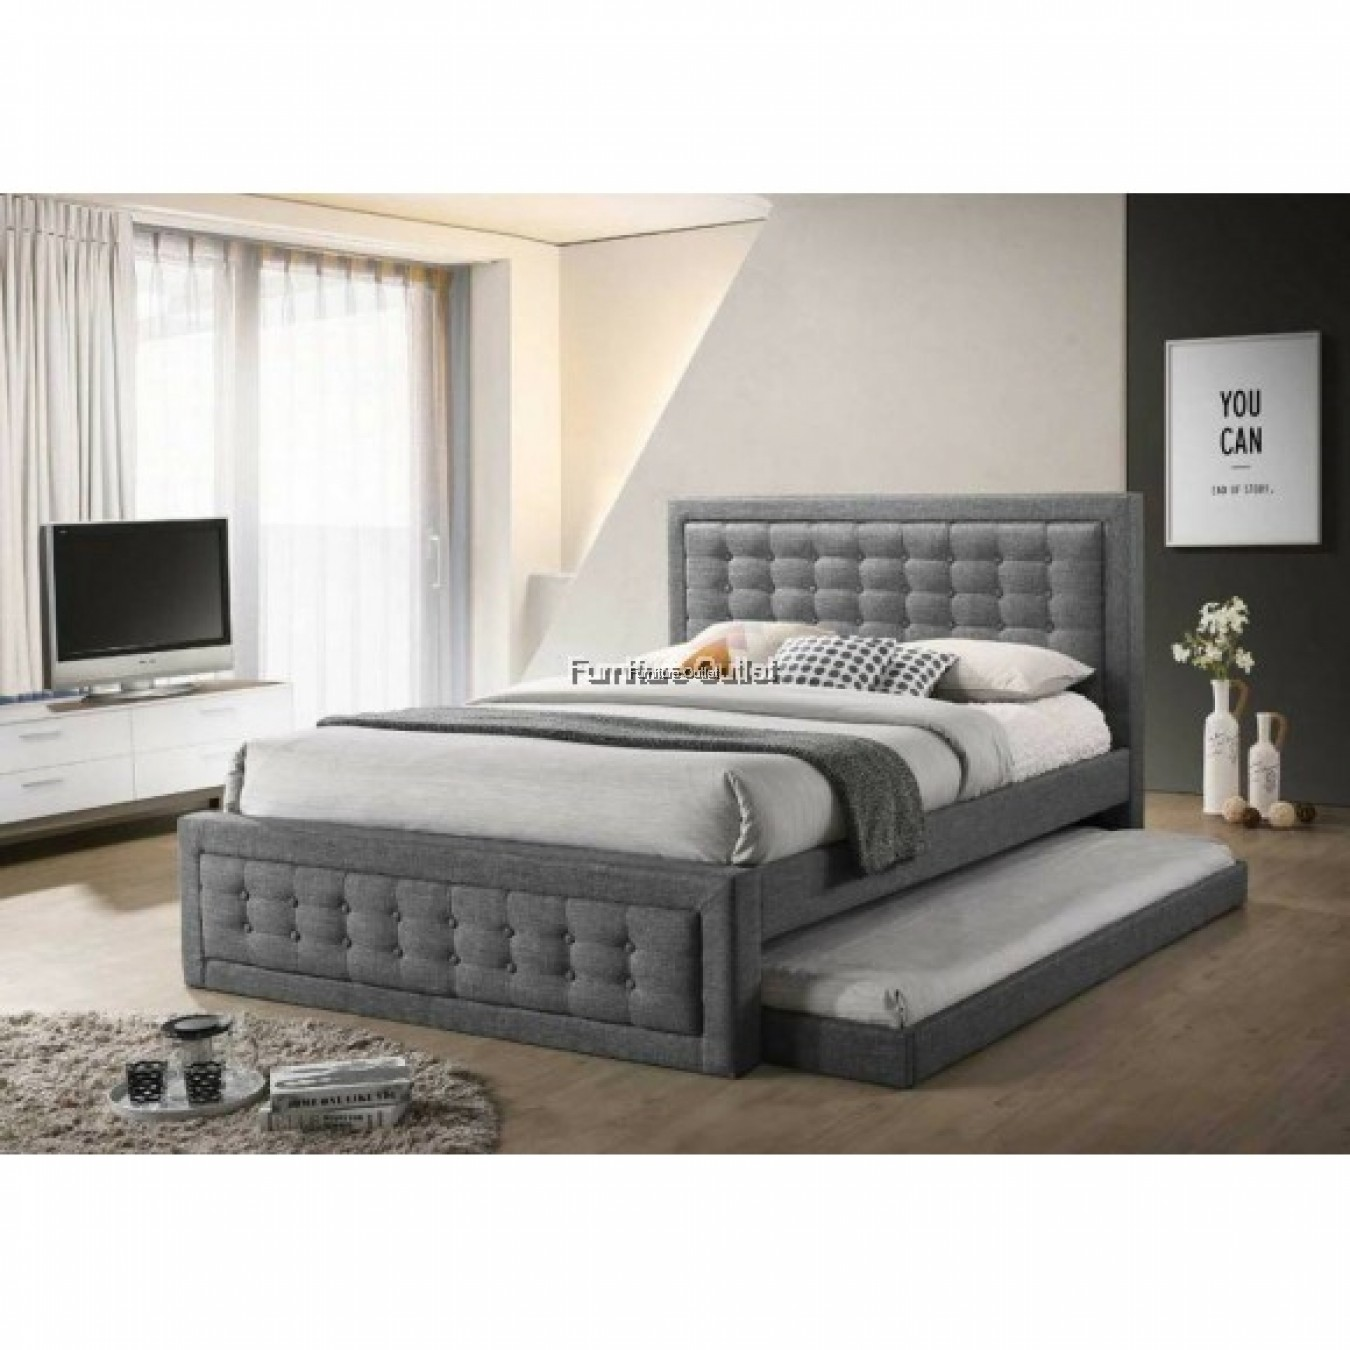 [ FREE SHIPPING ] VICTORIA QUEEN + PULLOUT BED + 6'' SINGLE 10'' QUEEN MATTRESS